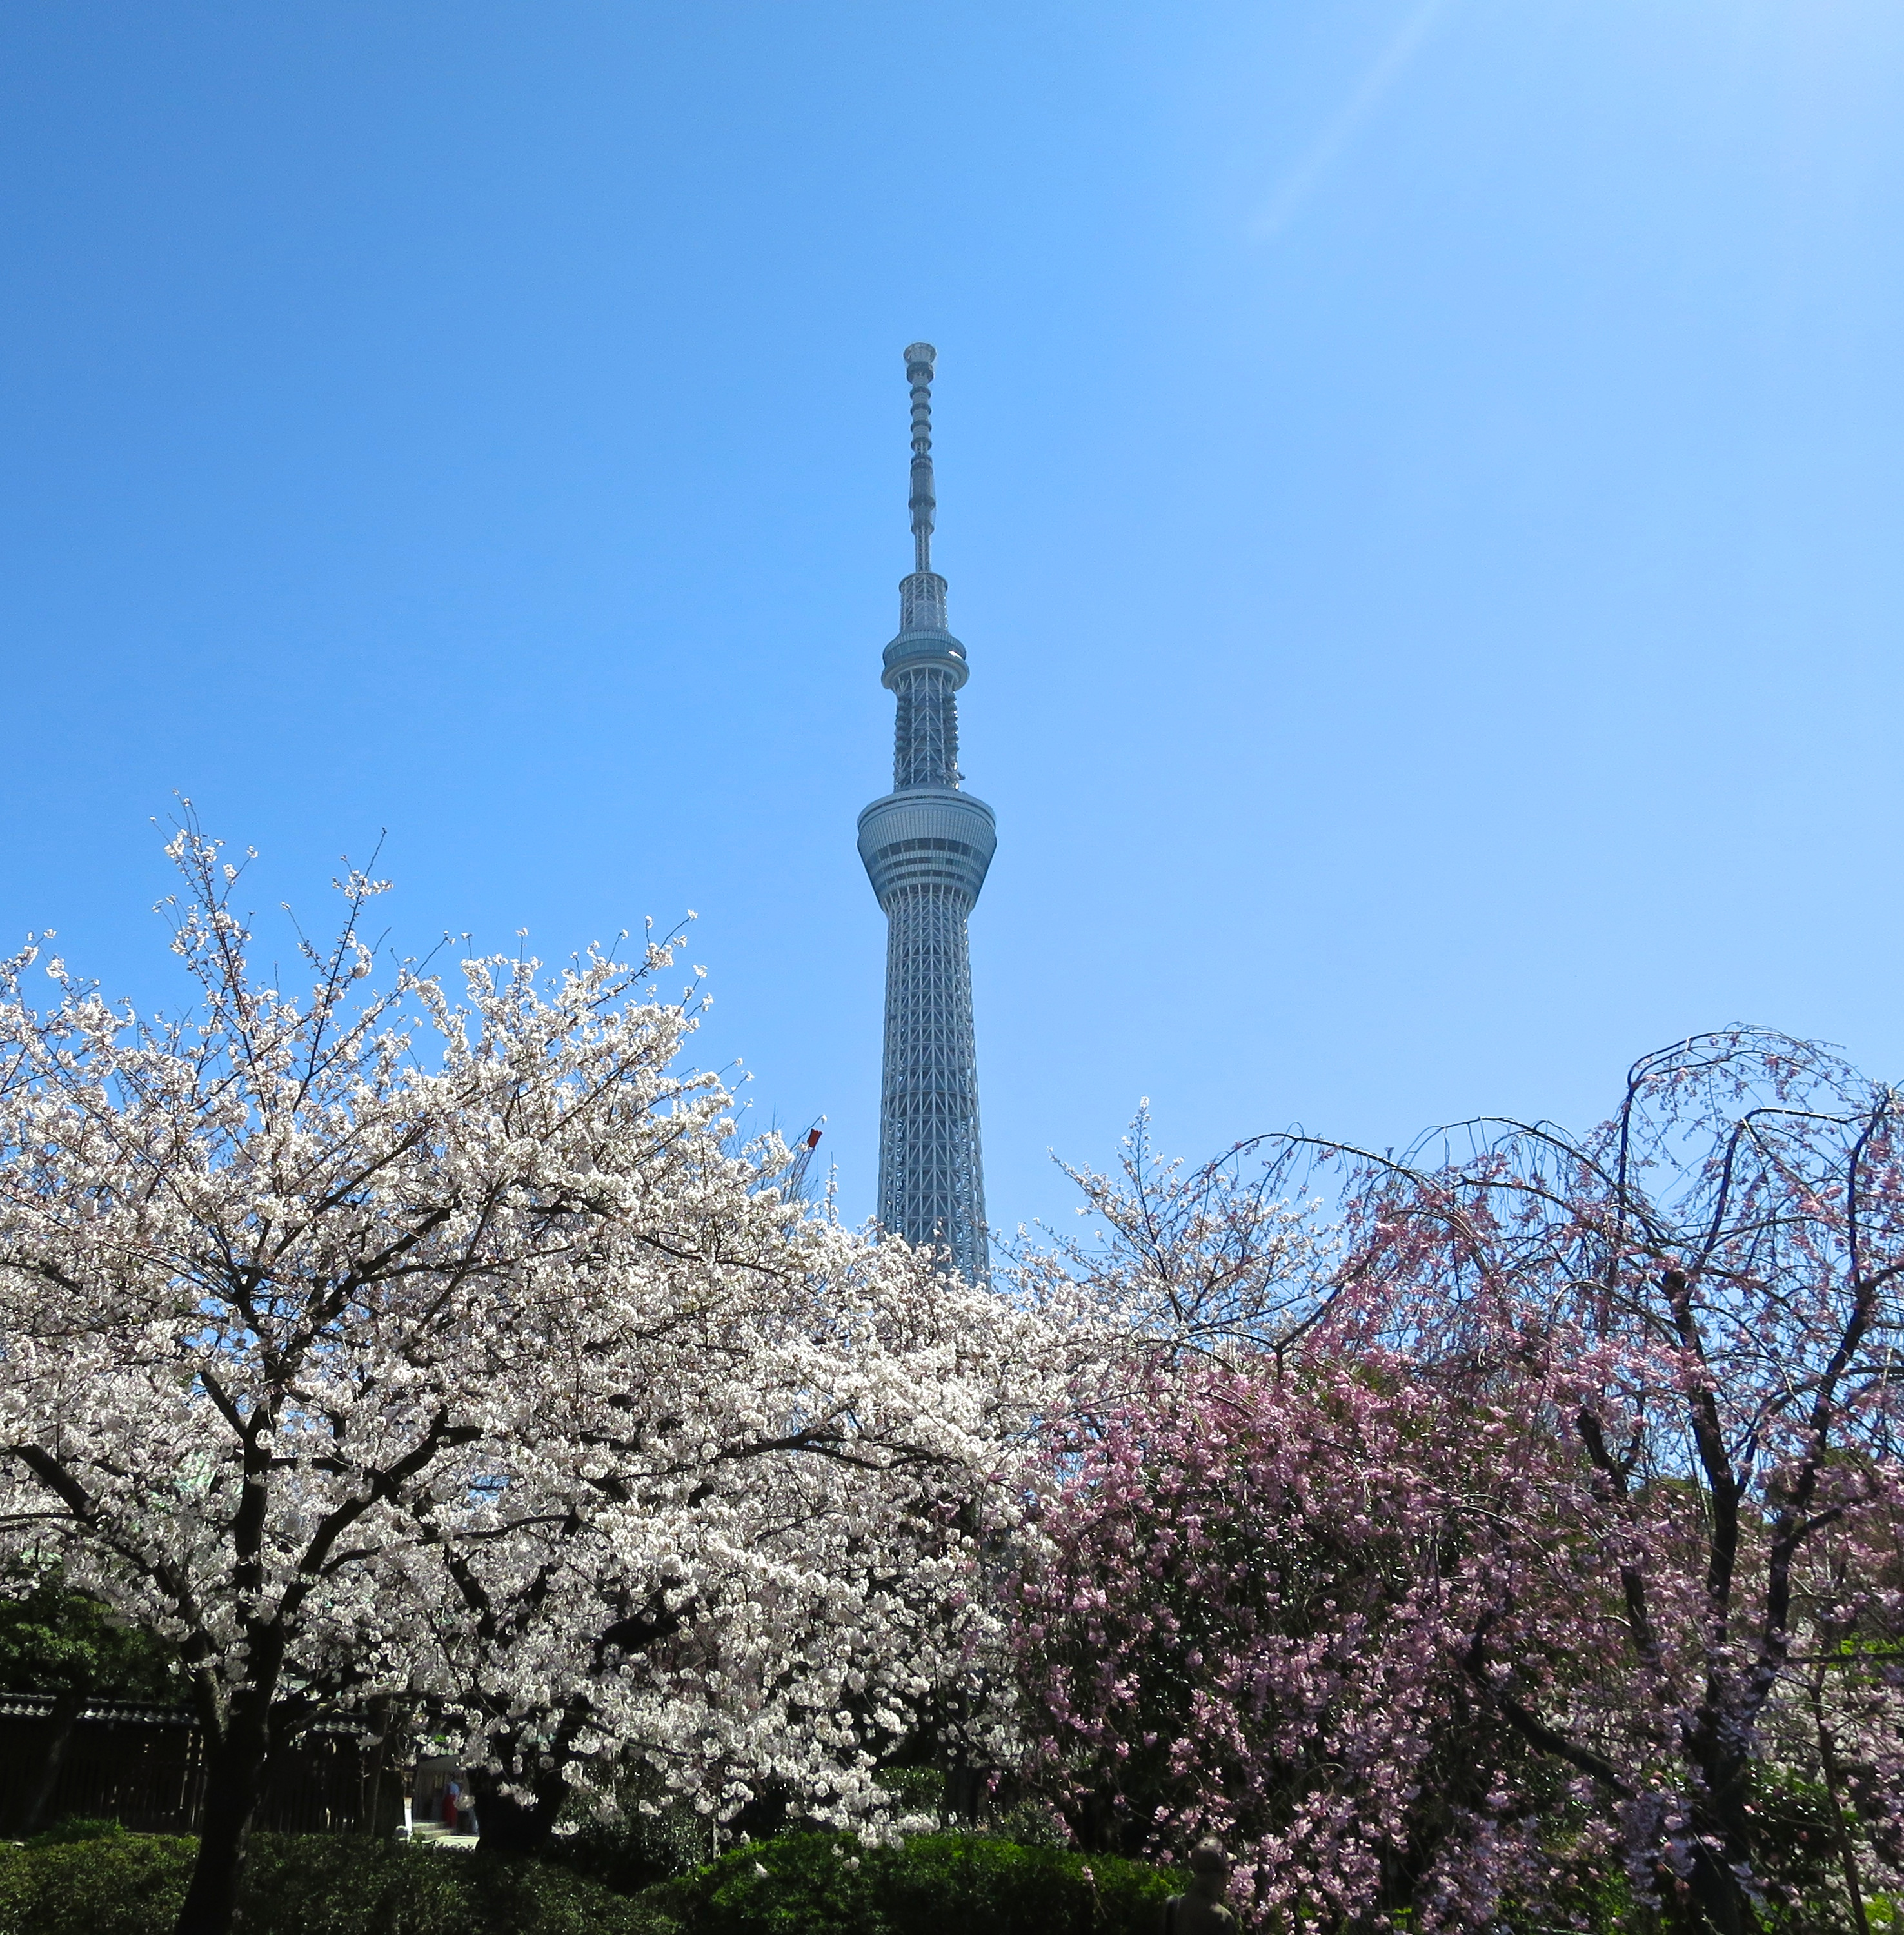 And, of course, if you want cherry blossom-encrusted shots of the big Skytree thing, this is the place to whip out your camera.